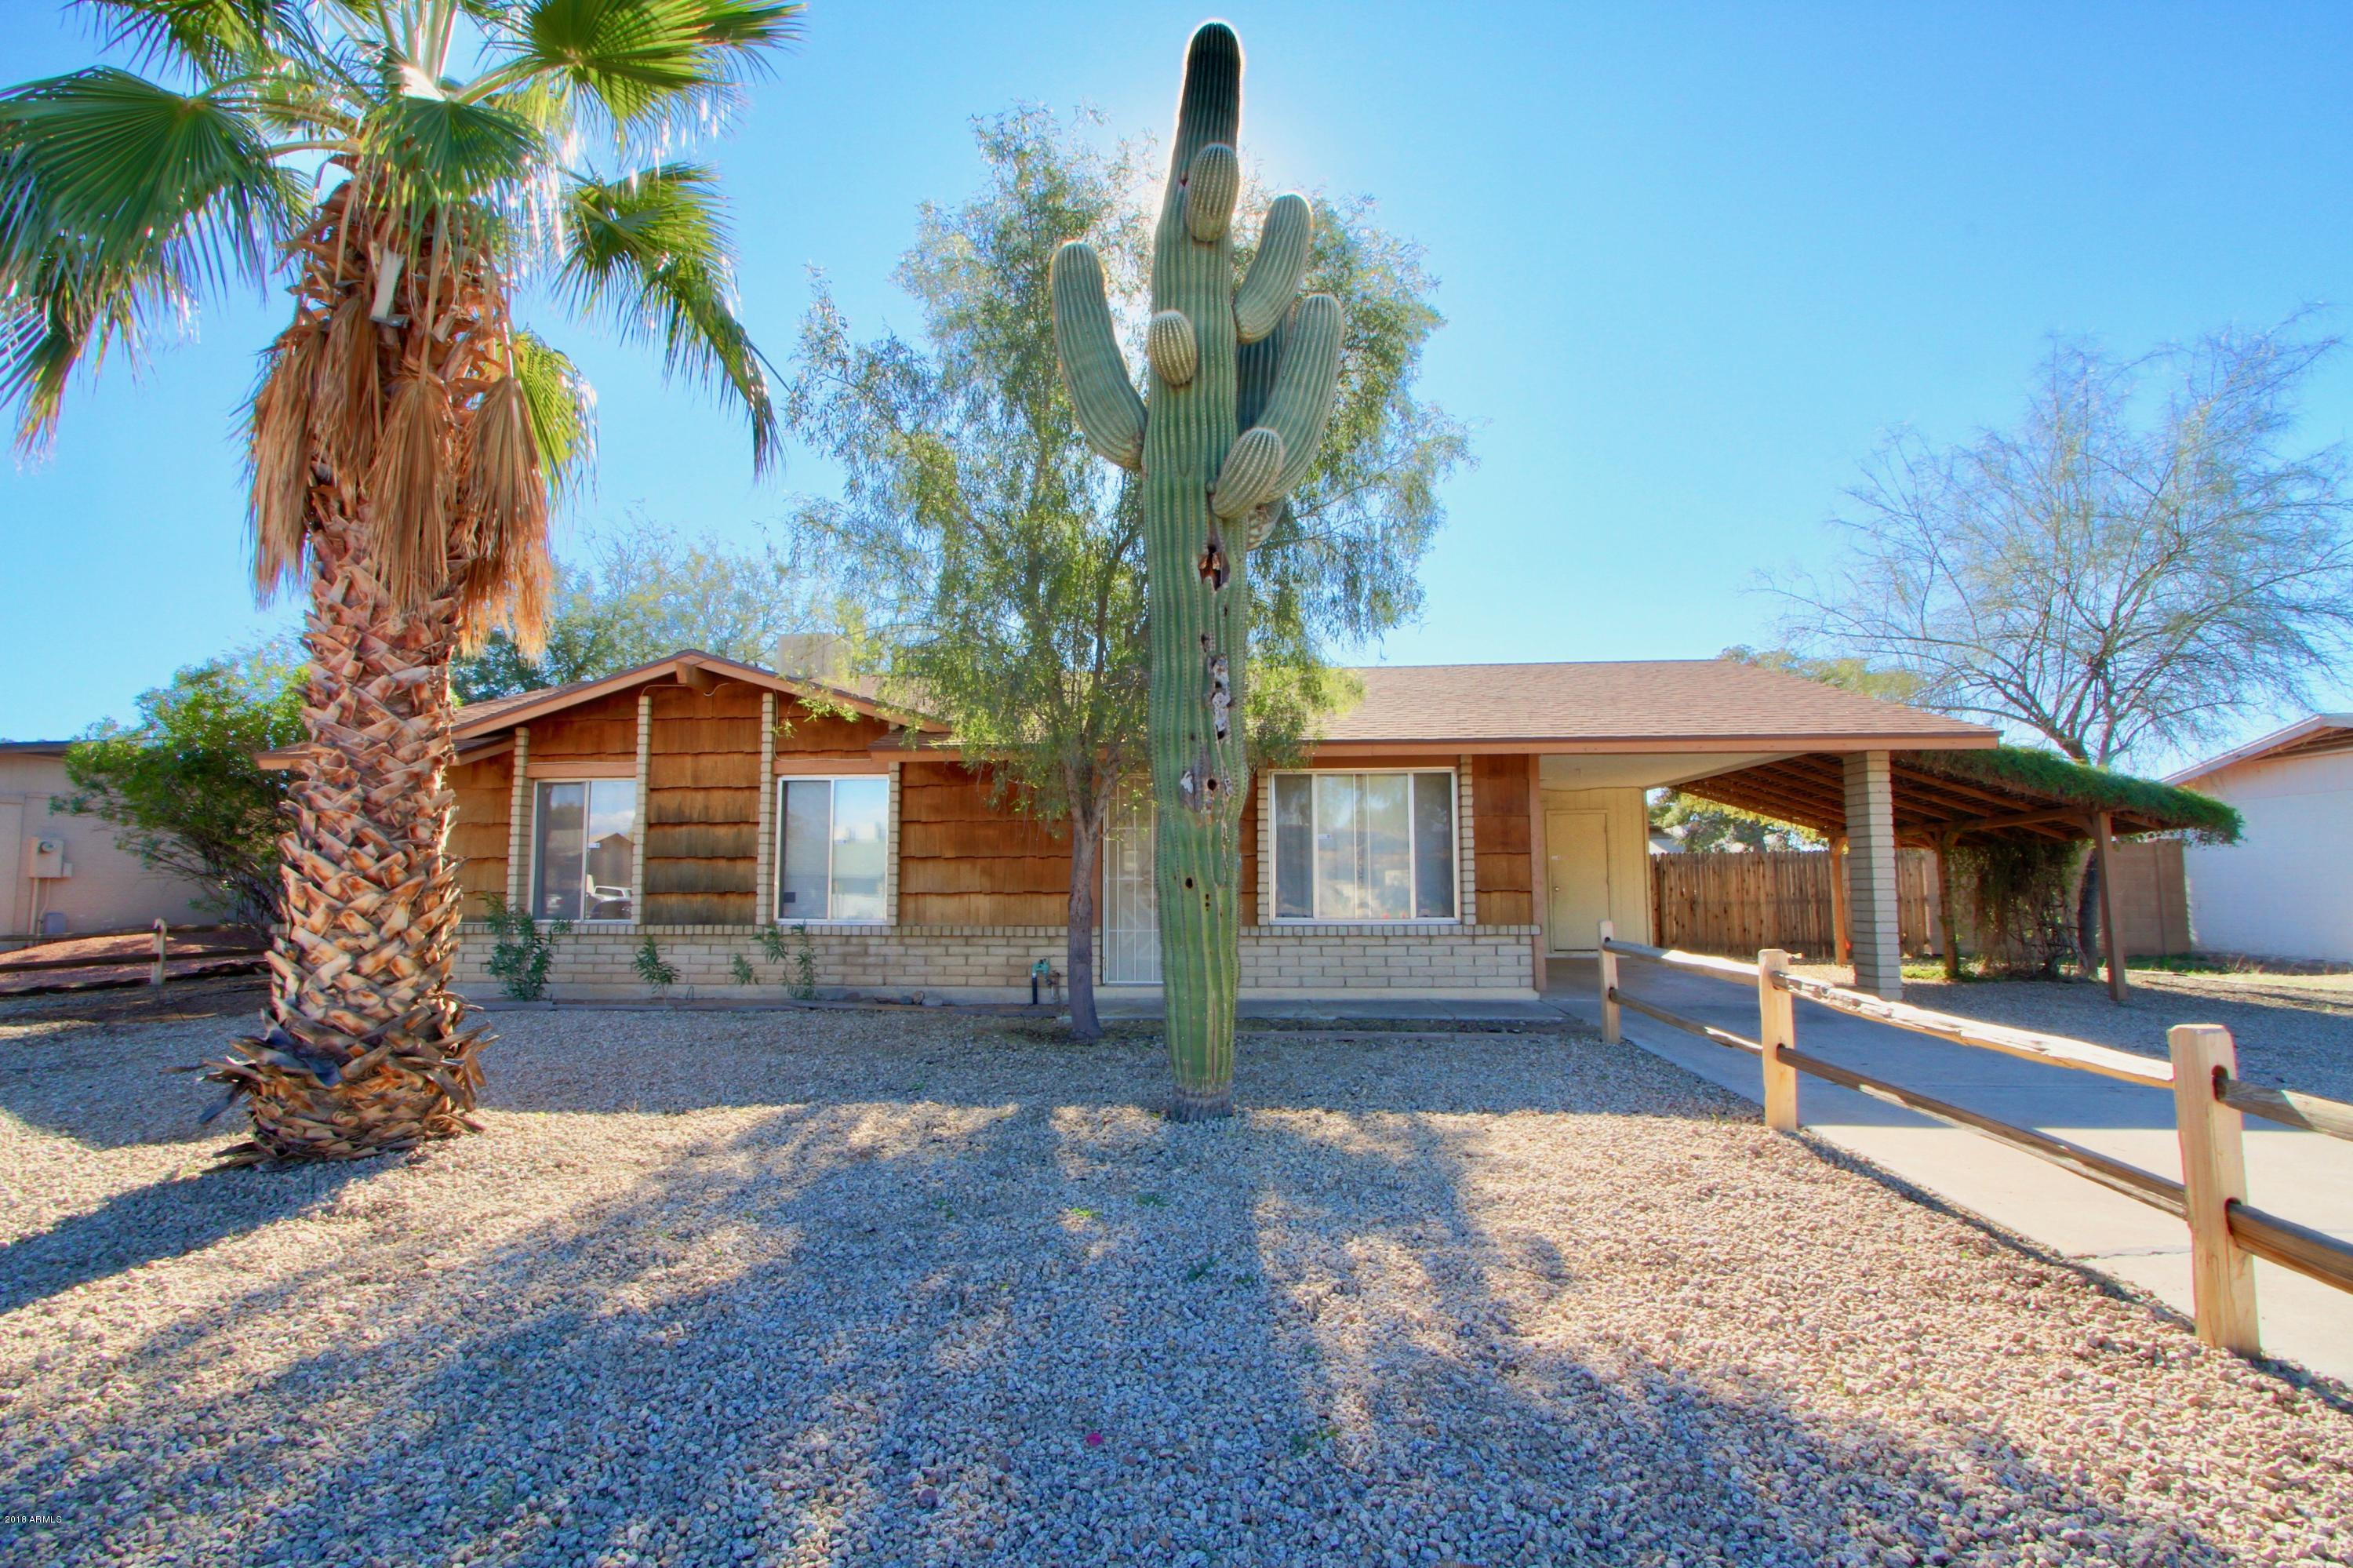 MLS 5861052 1825 W Utopia Road, Phoenix, AZ 85027 Phoenix AZ Desert Valley Estates